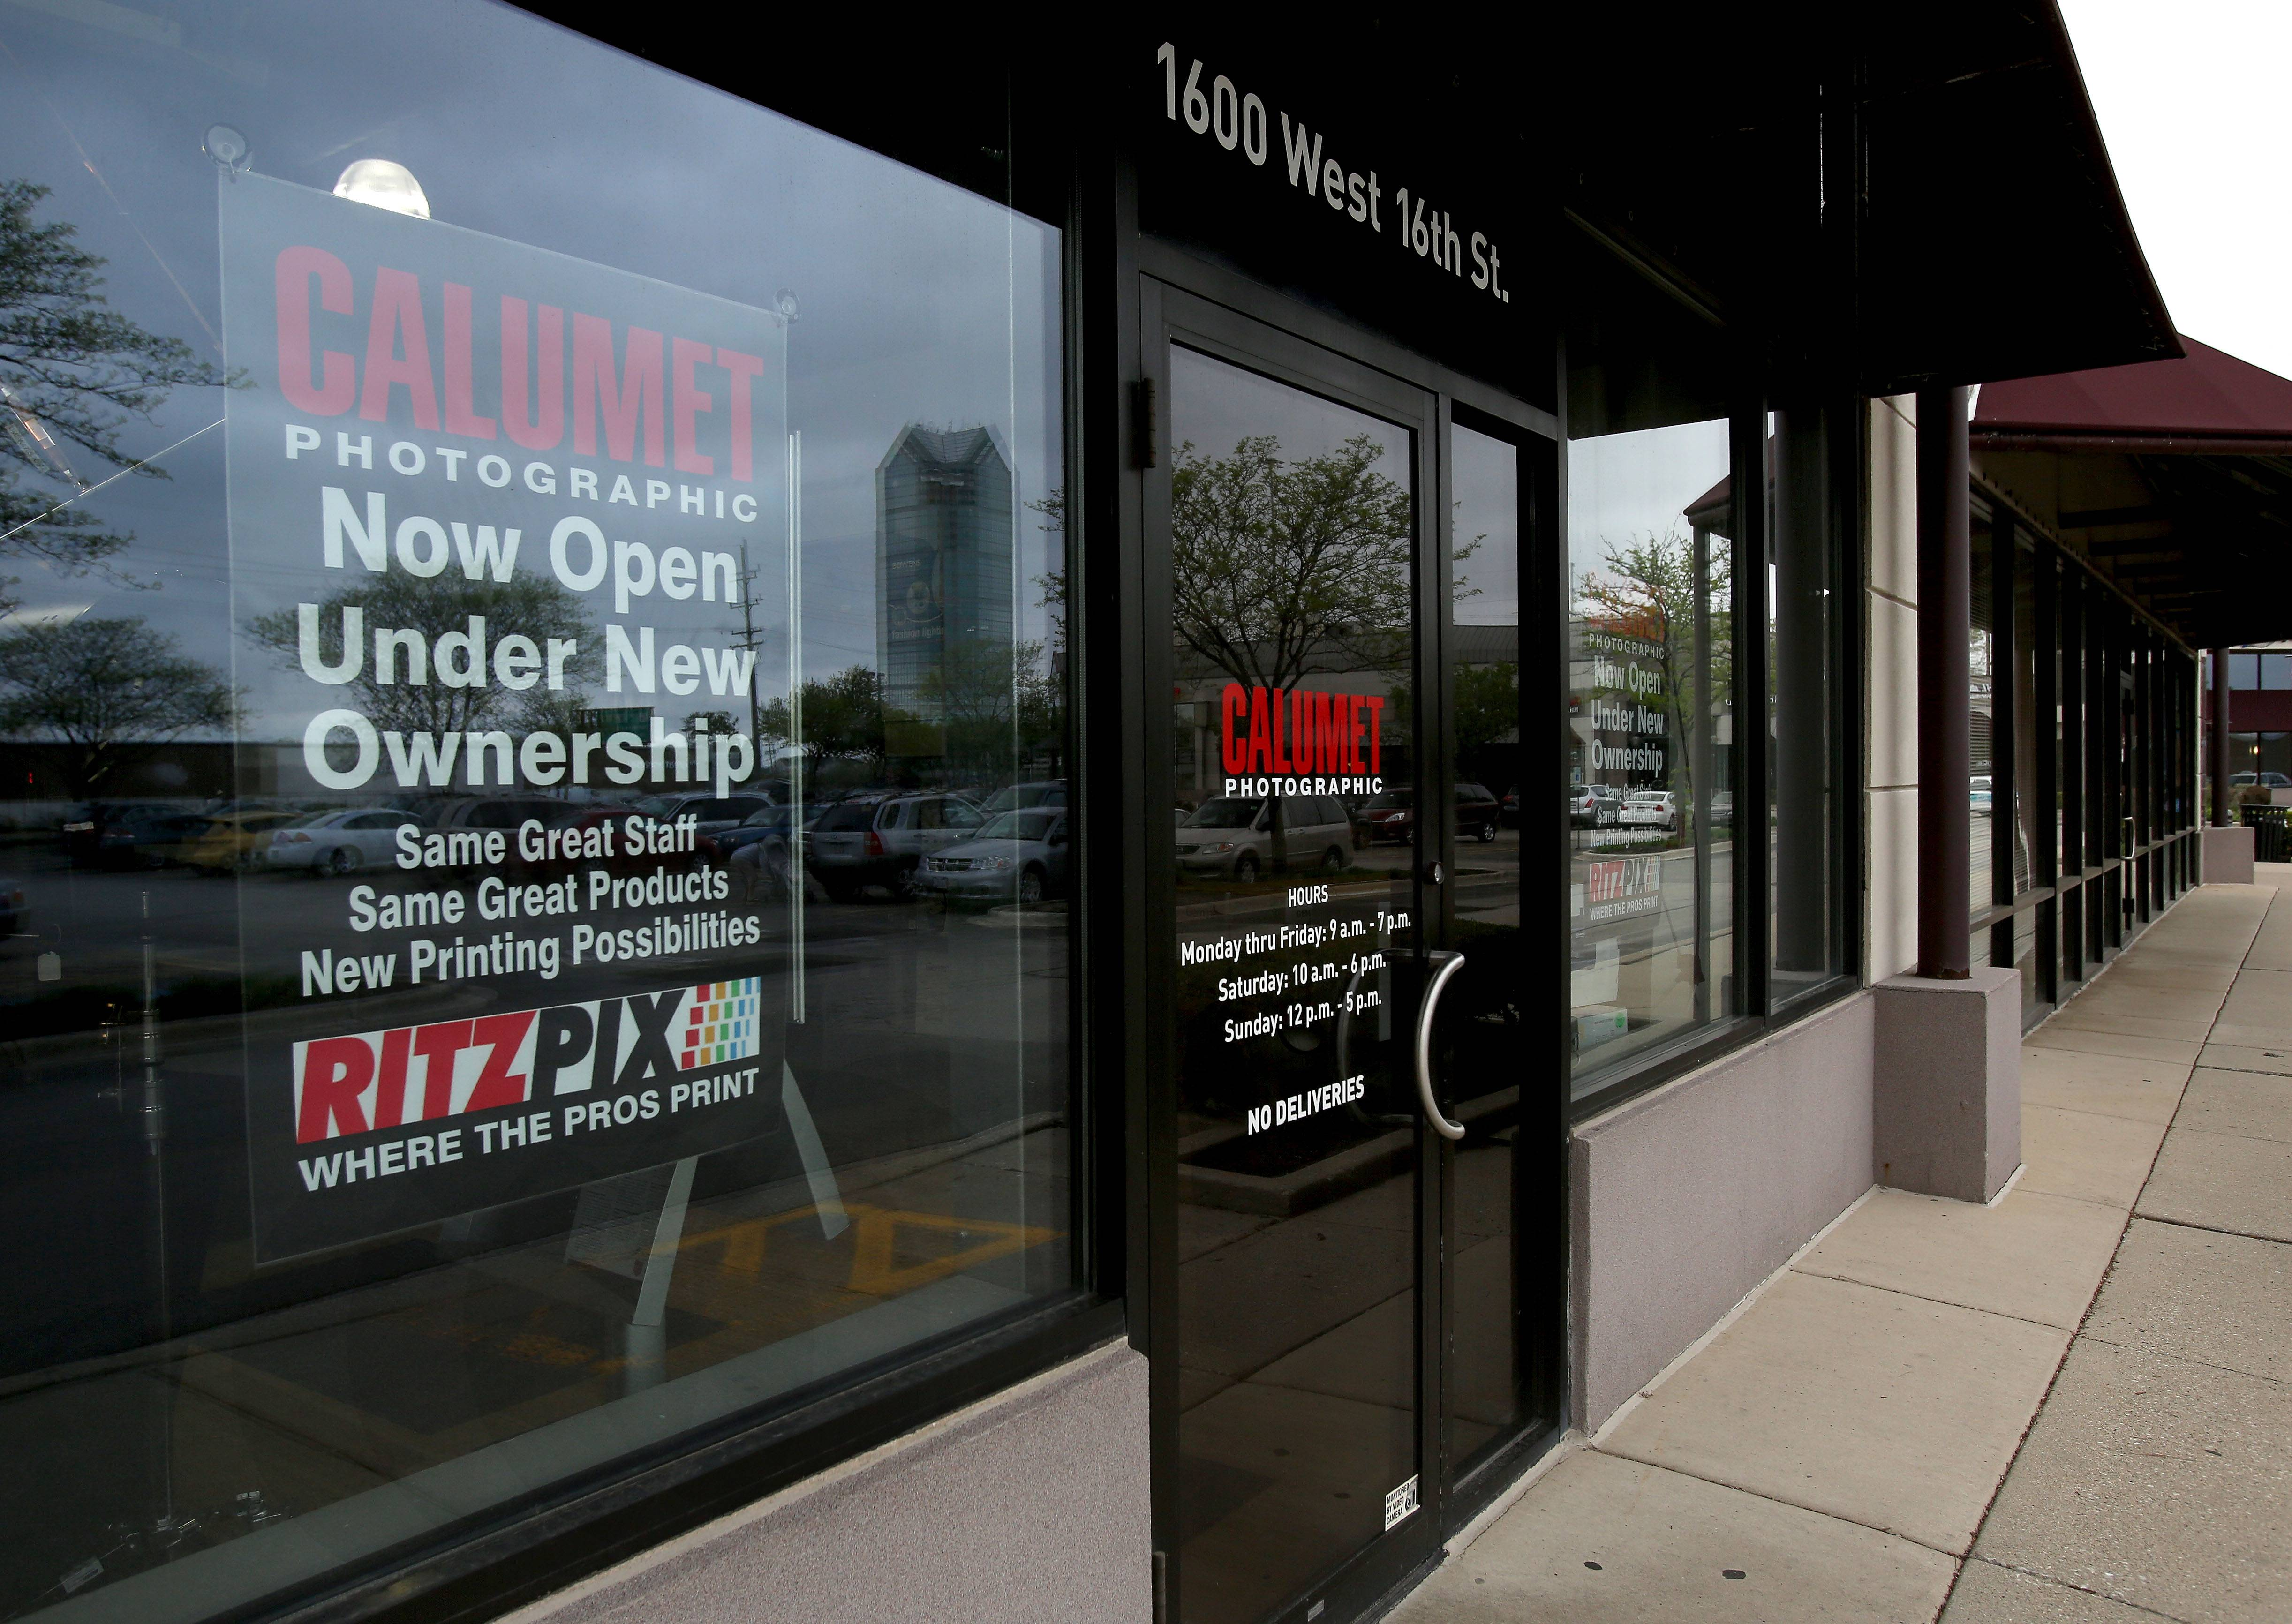 Calumet Photo, which filed bankruptcy earlier this year, has reopened its store in Oak Brook under new ownership.